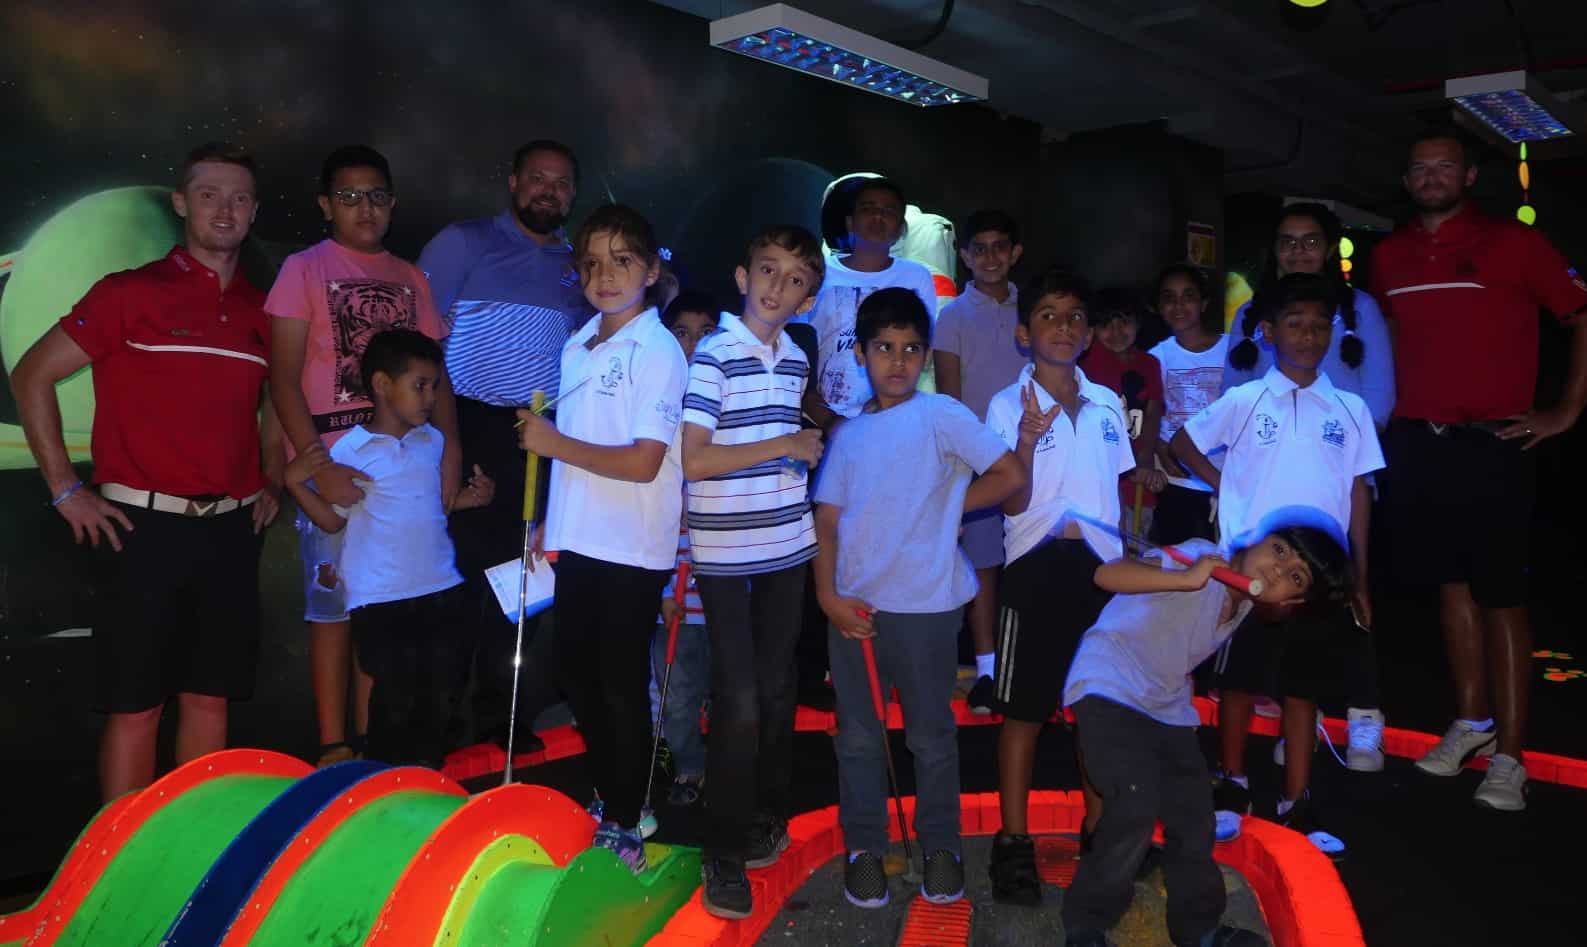 Video Egf Youngsters Enjoy Crazy Round At Tee Amp Putt Mini